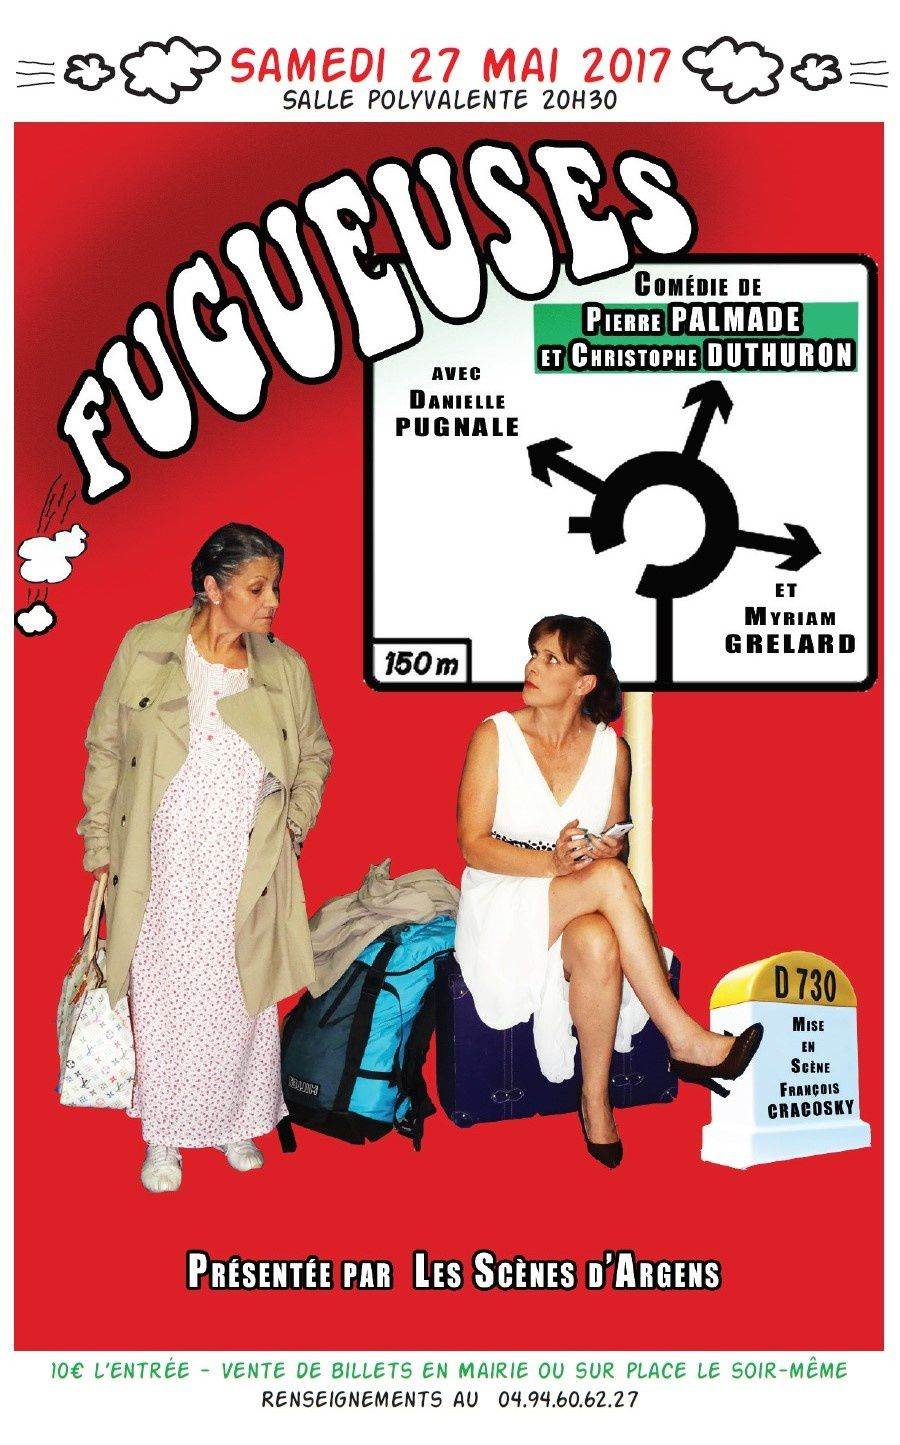 Spectacle : Fugueuses